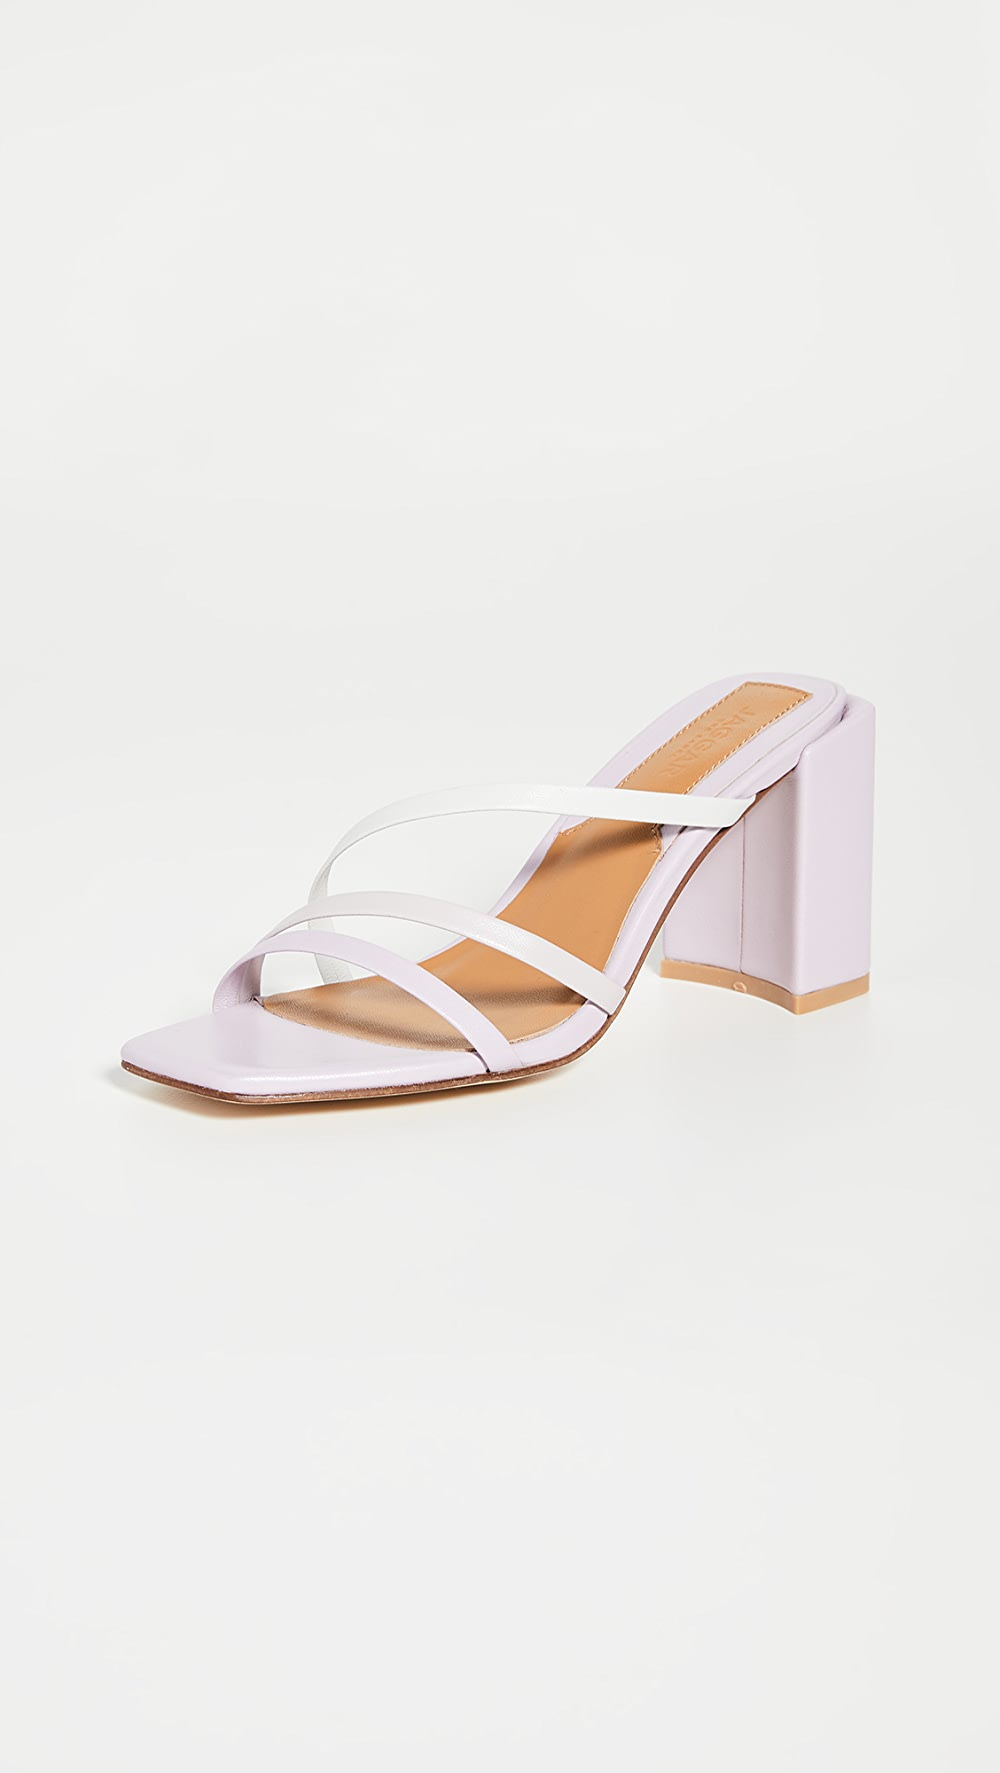 Friendly Jaggar - Resort Heel Ombre Slides Keep You Fit All The Time